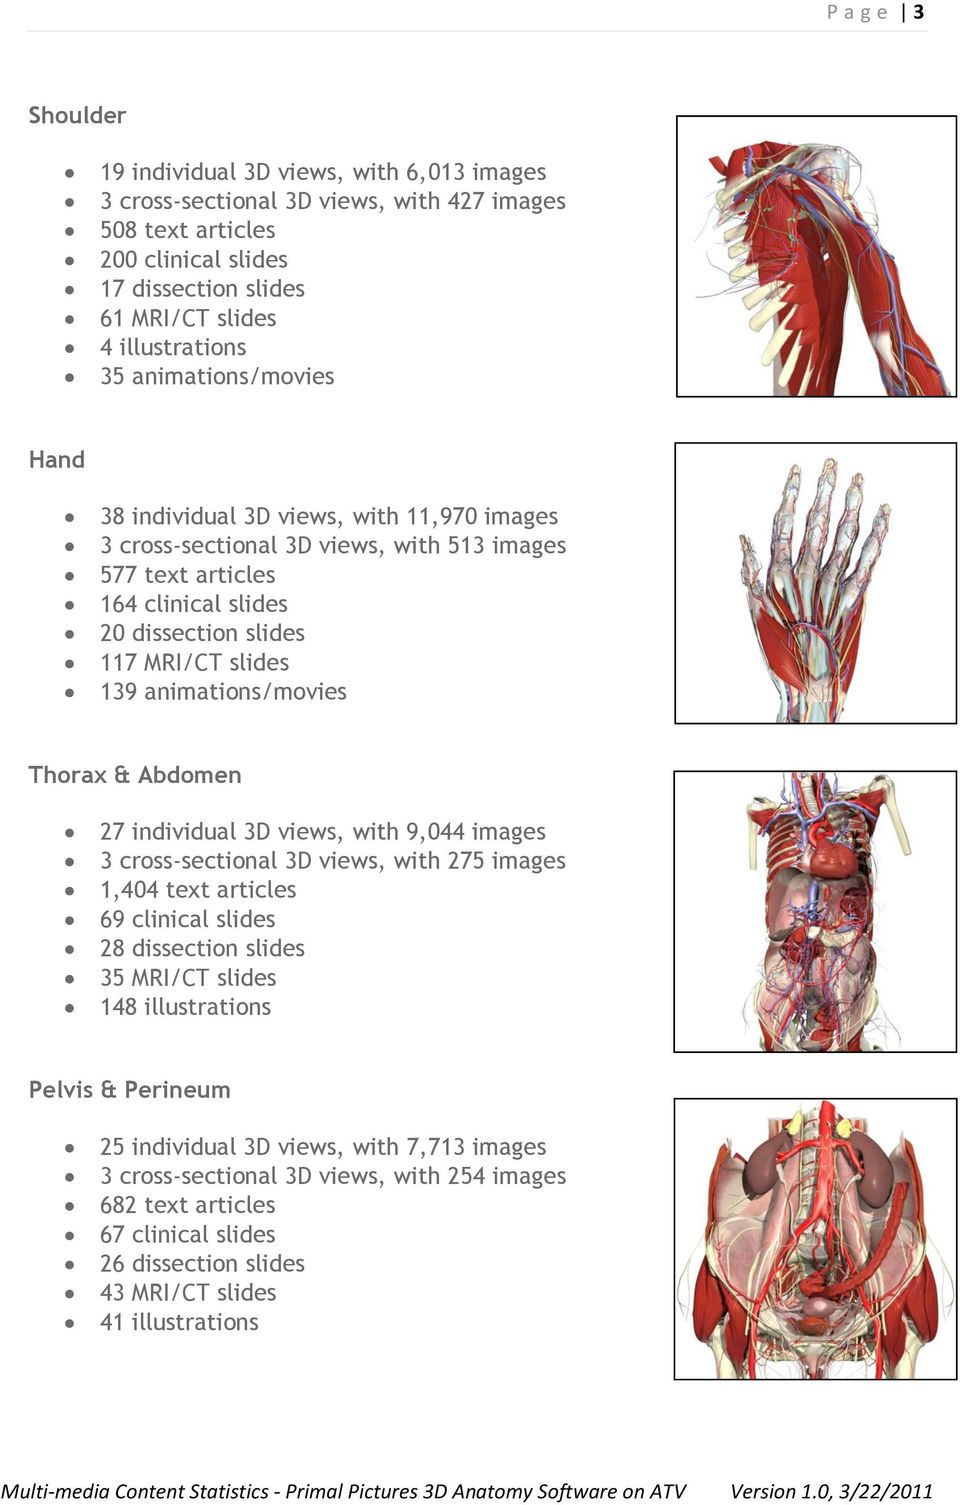 animations/movies Thorax & Abdomen 27 individual 3D views, with 9,044 images 3 cross-sectional 3D views, with 275 images 1,404 text articles 69 clinical slides 28 dissection slides 35 MRI/CT slides